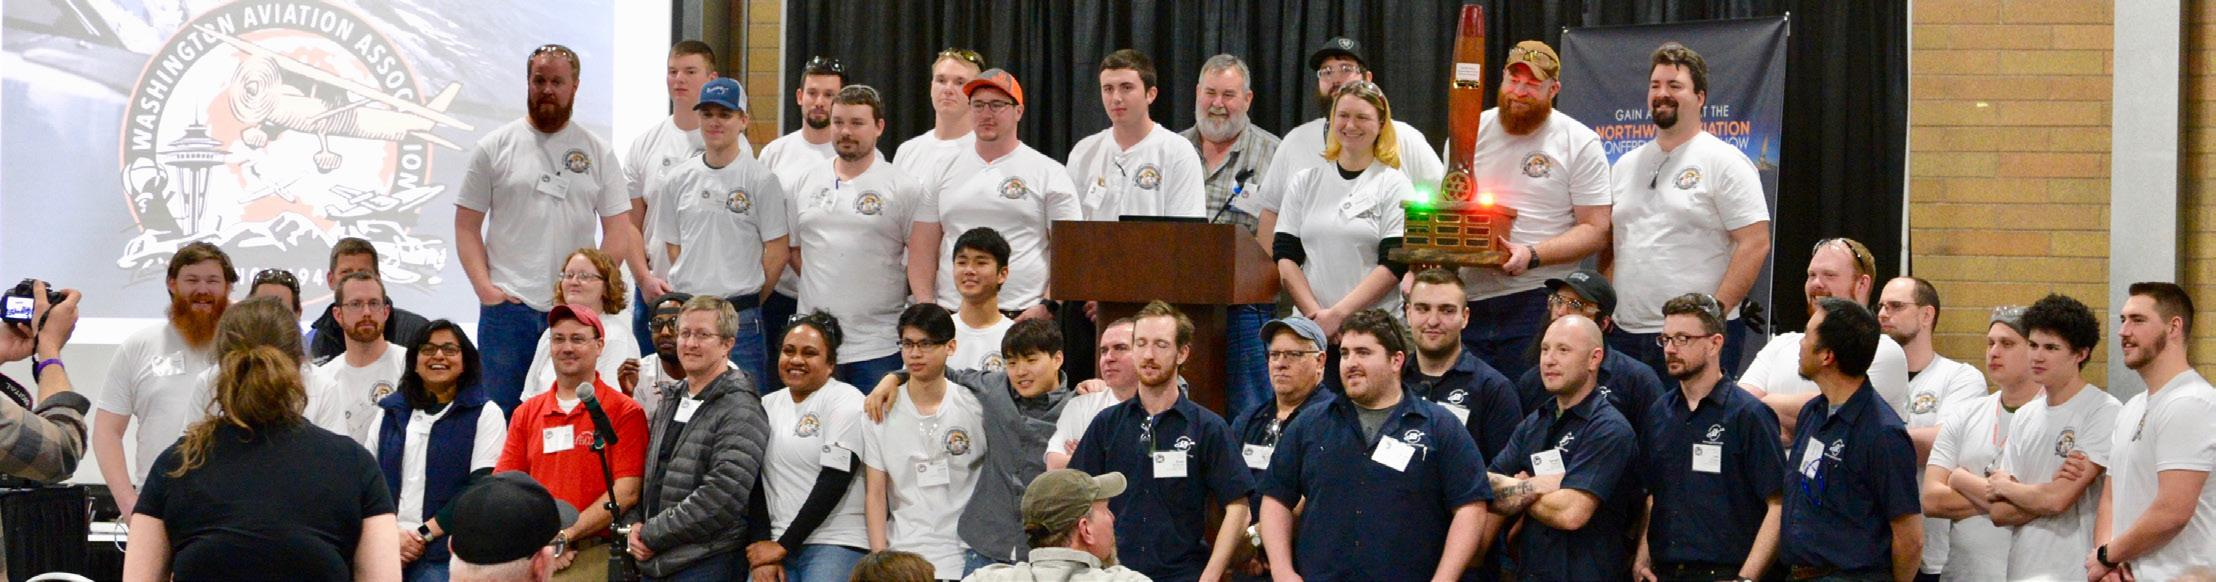 Page 22 of 5th Annual NW Regional AMT SKILLS COMPETITION